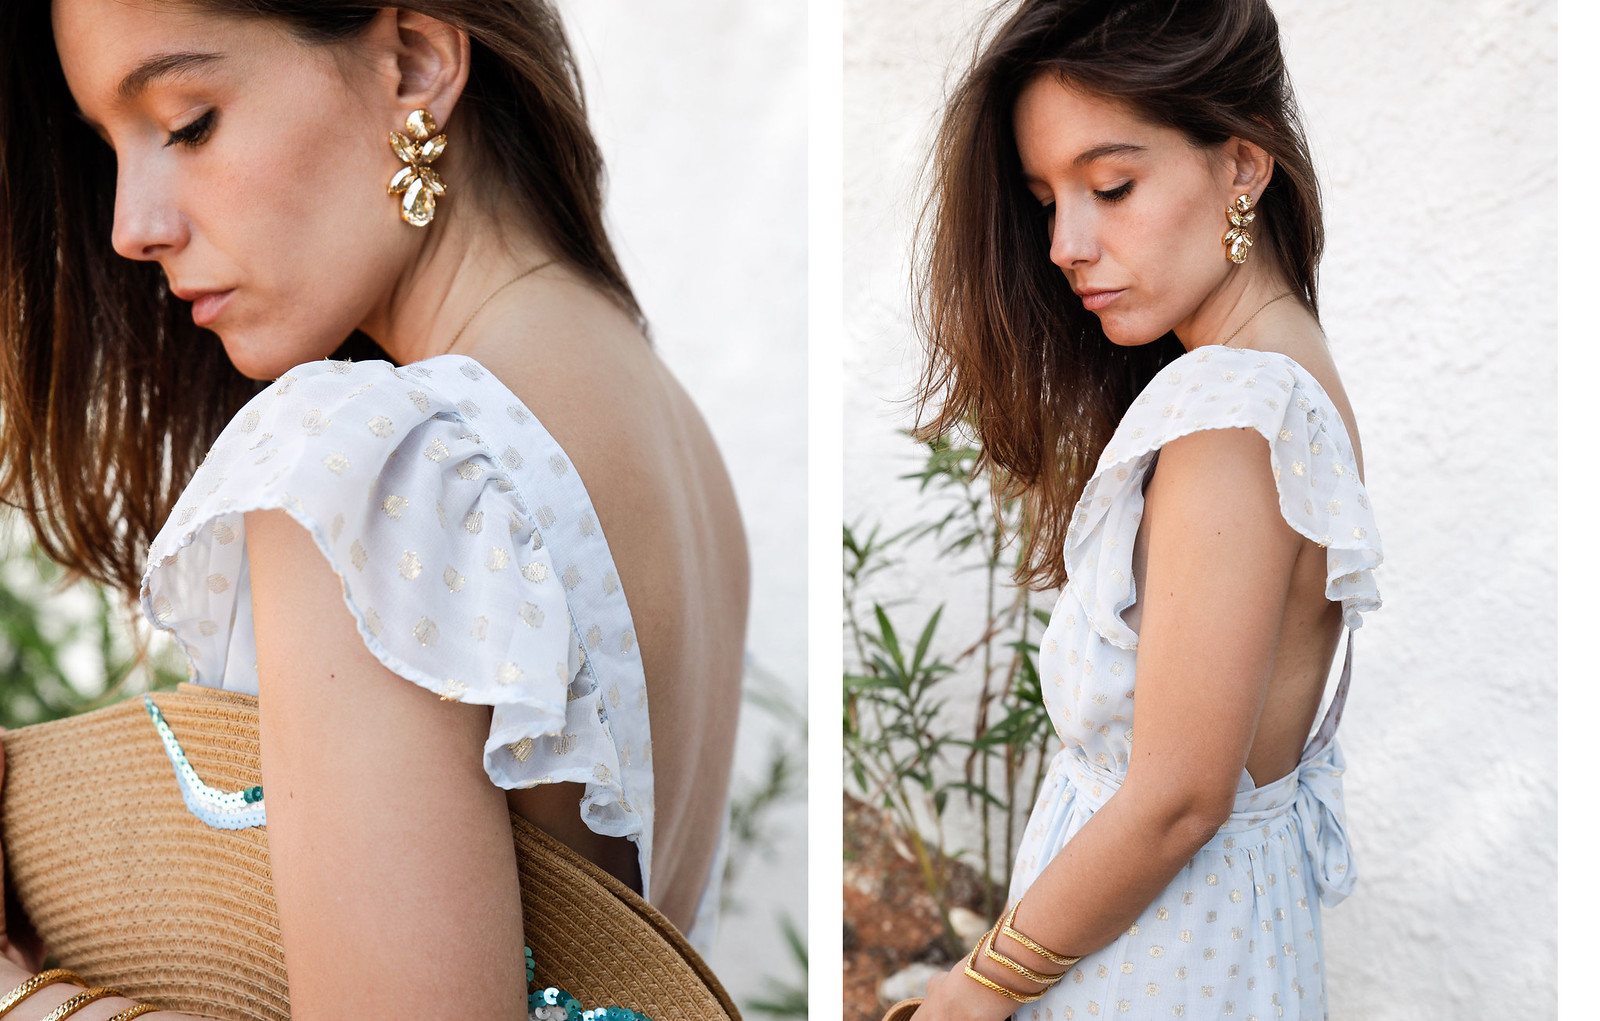 08_golden_dots_lunares_dorados_vestido_azul_boho_deby_debo_long_dress_theguestgirl_influencer_barcelona_style_content_creator_fashion_spain